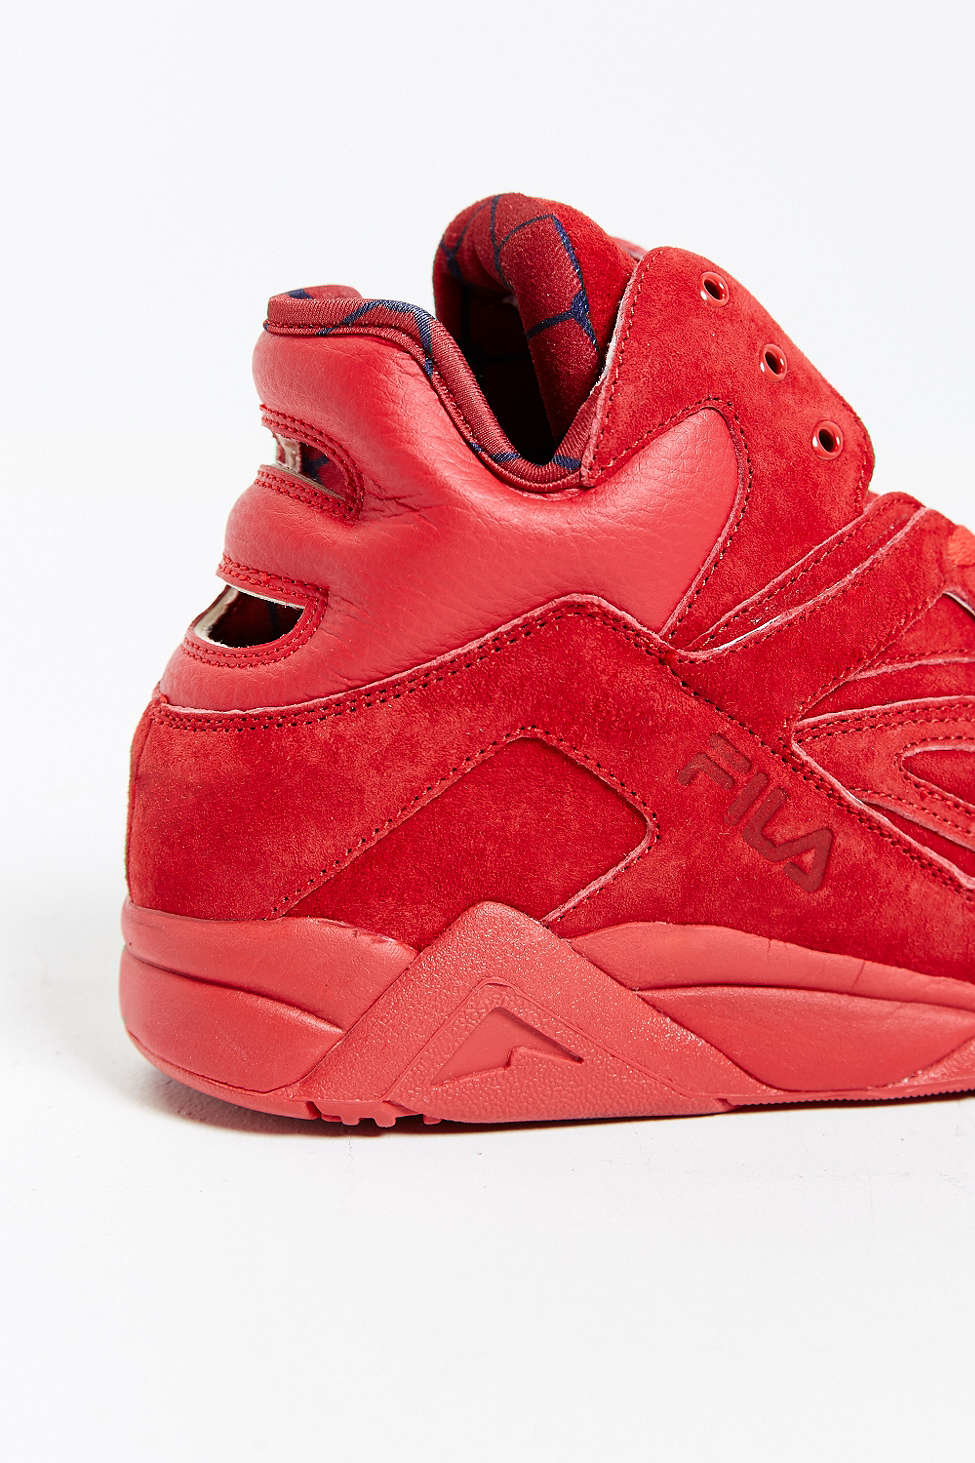 Fila Suede The Cage Sneaker in Red for